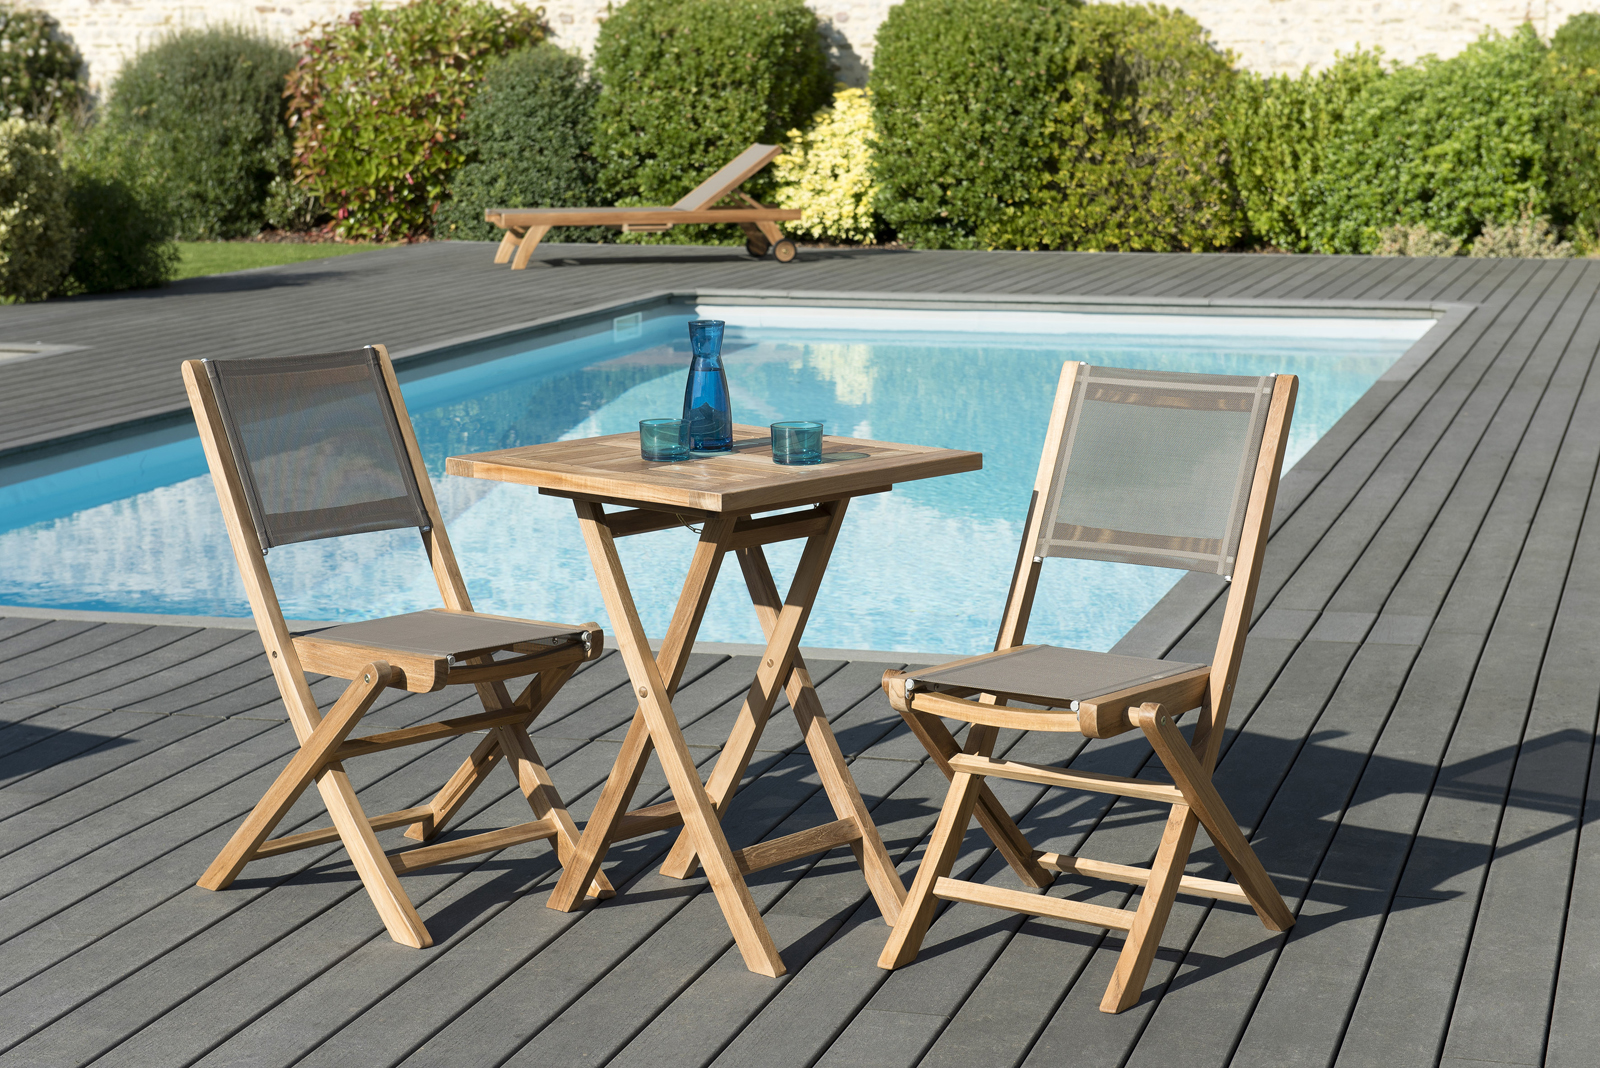 salon de jardin teck table carree 60x60 2 chaises pliantes summer ref 30020849